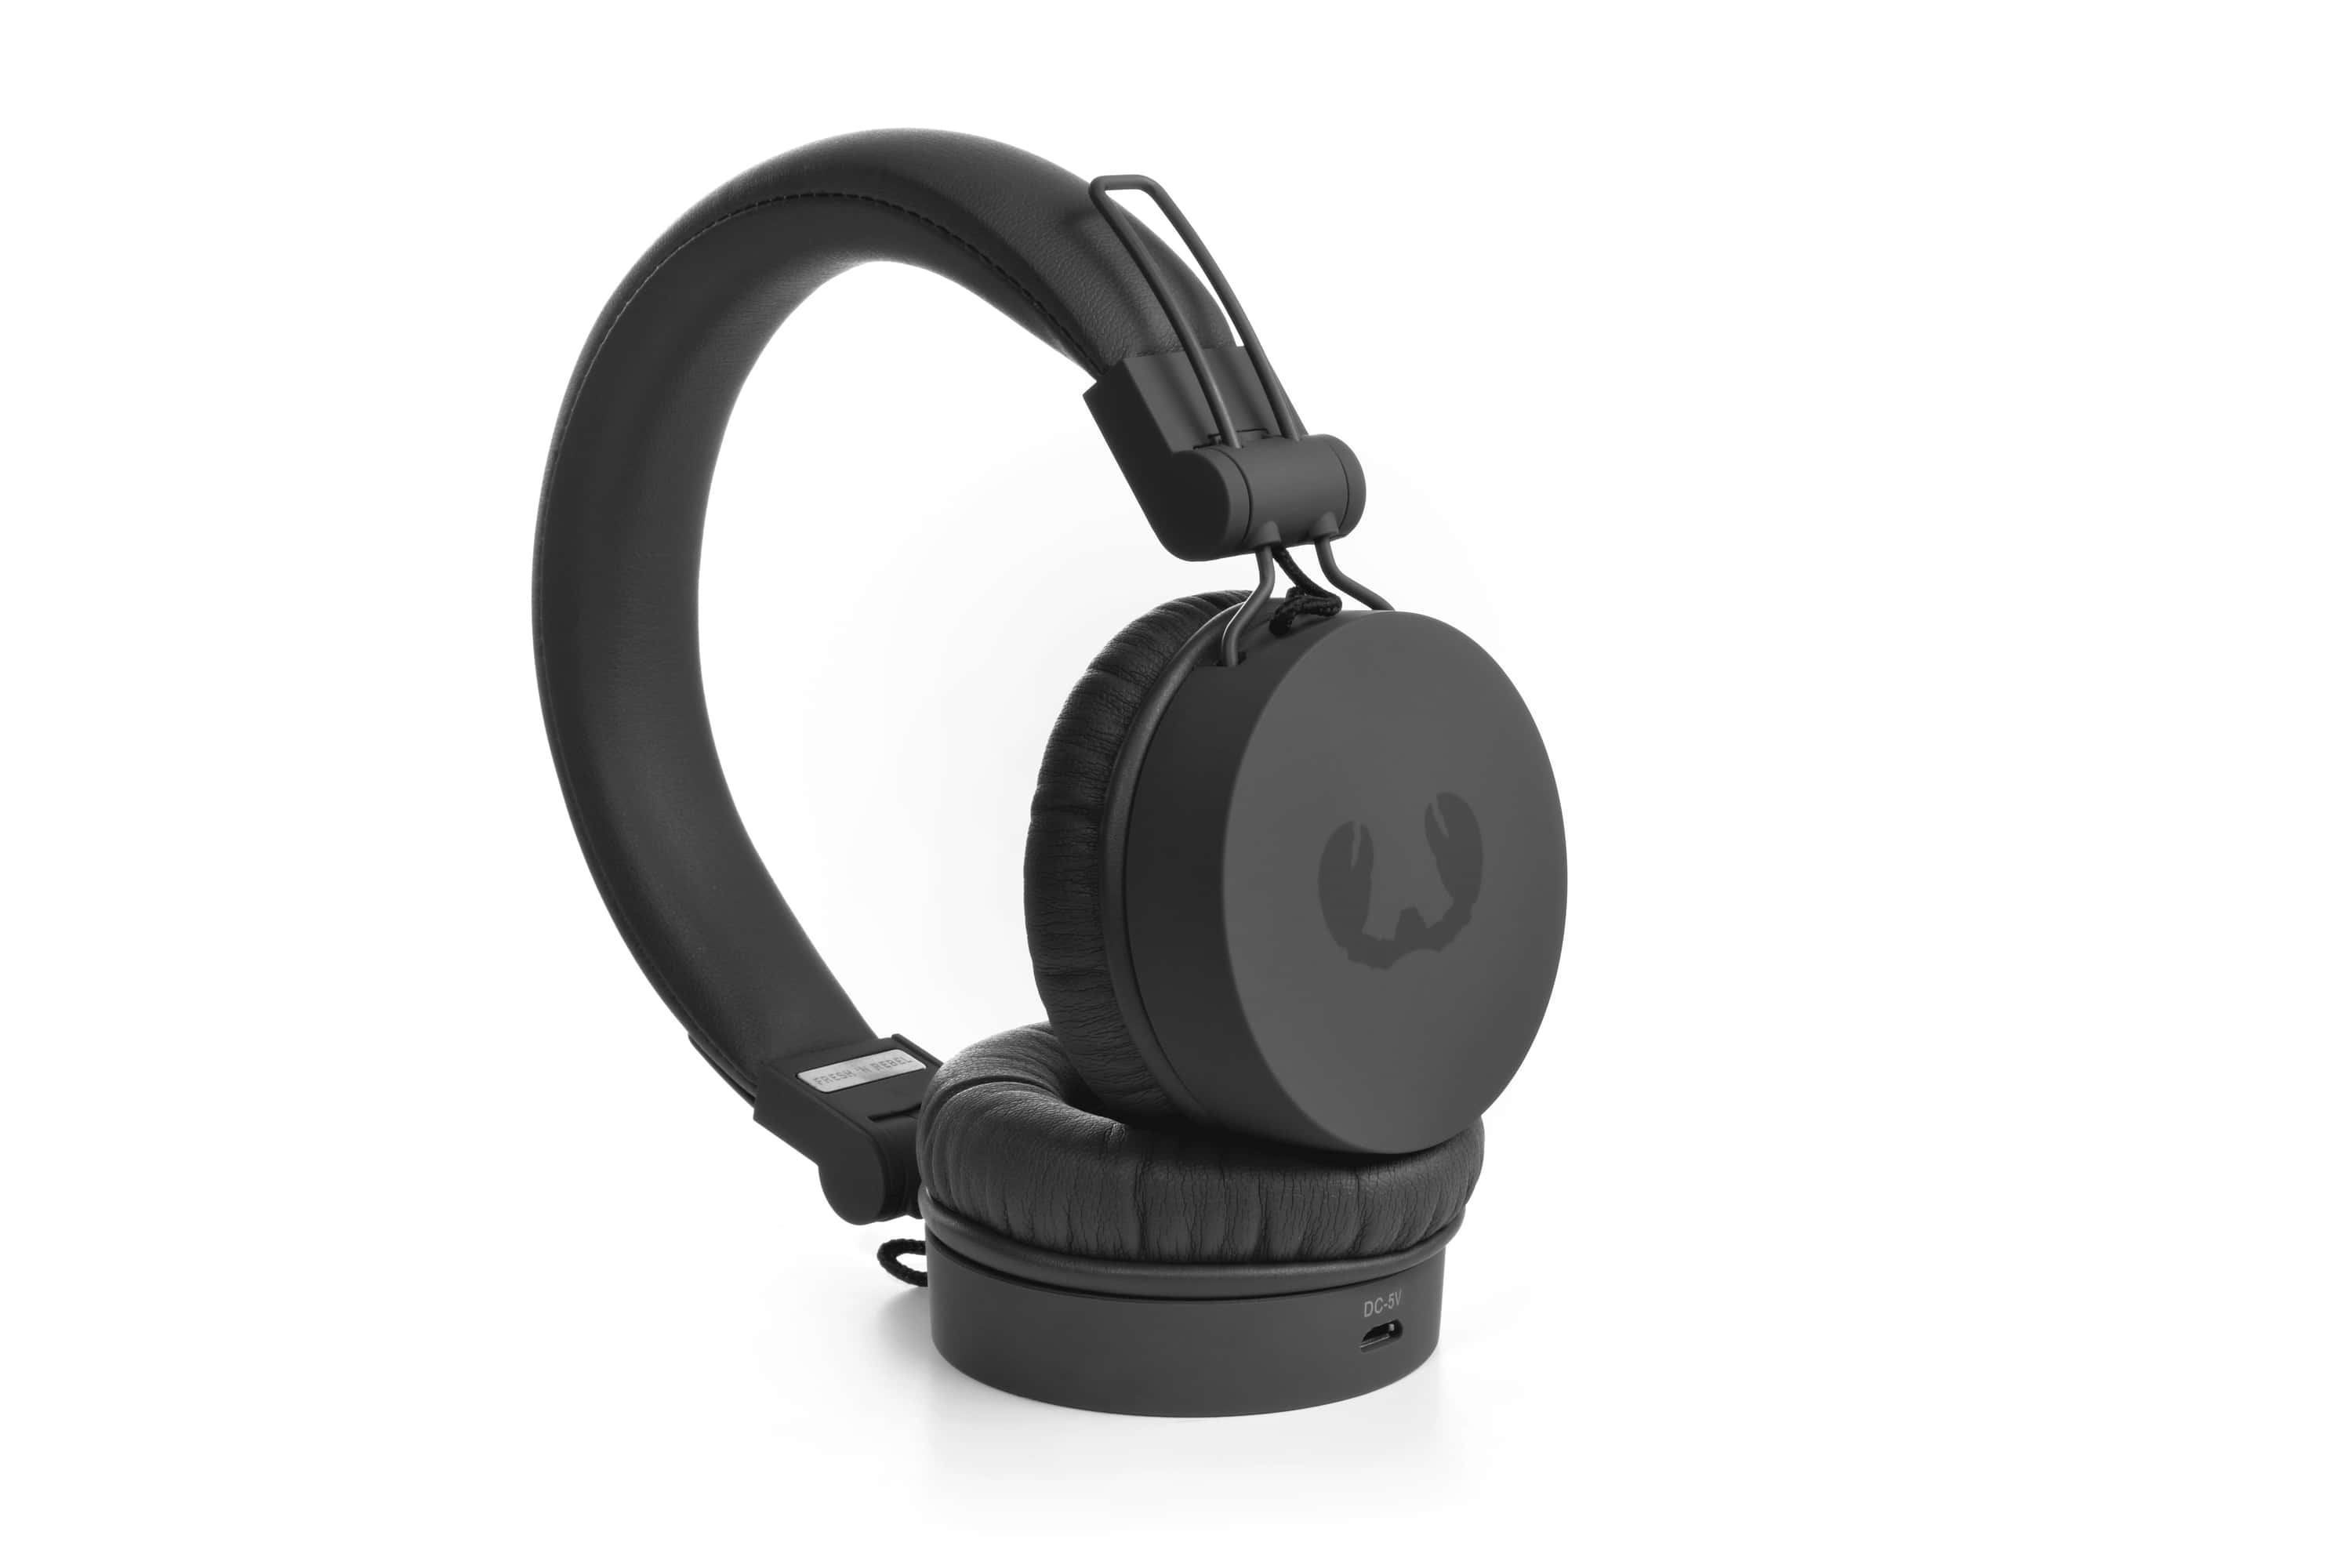 Fresh N Rebel Caps Wireless Headphones Von Expert Technomarkt Sennheiser Headphone Digital Rs175 Black Versand Kostenfrei